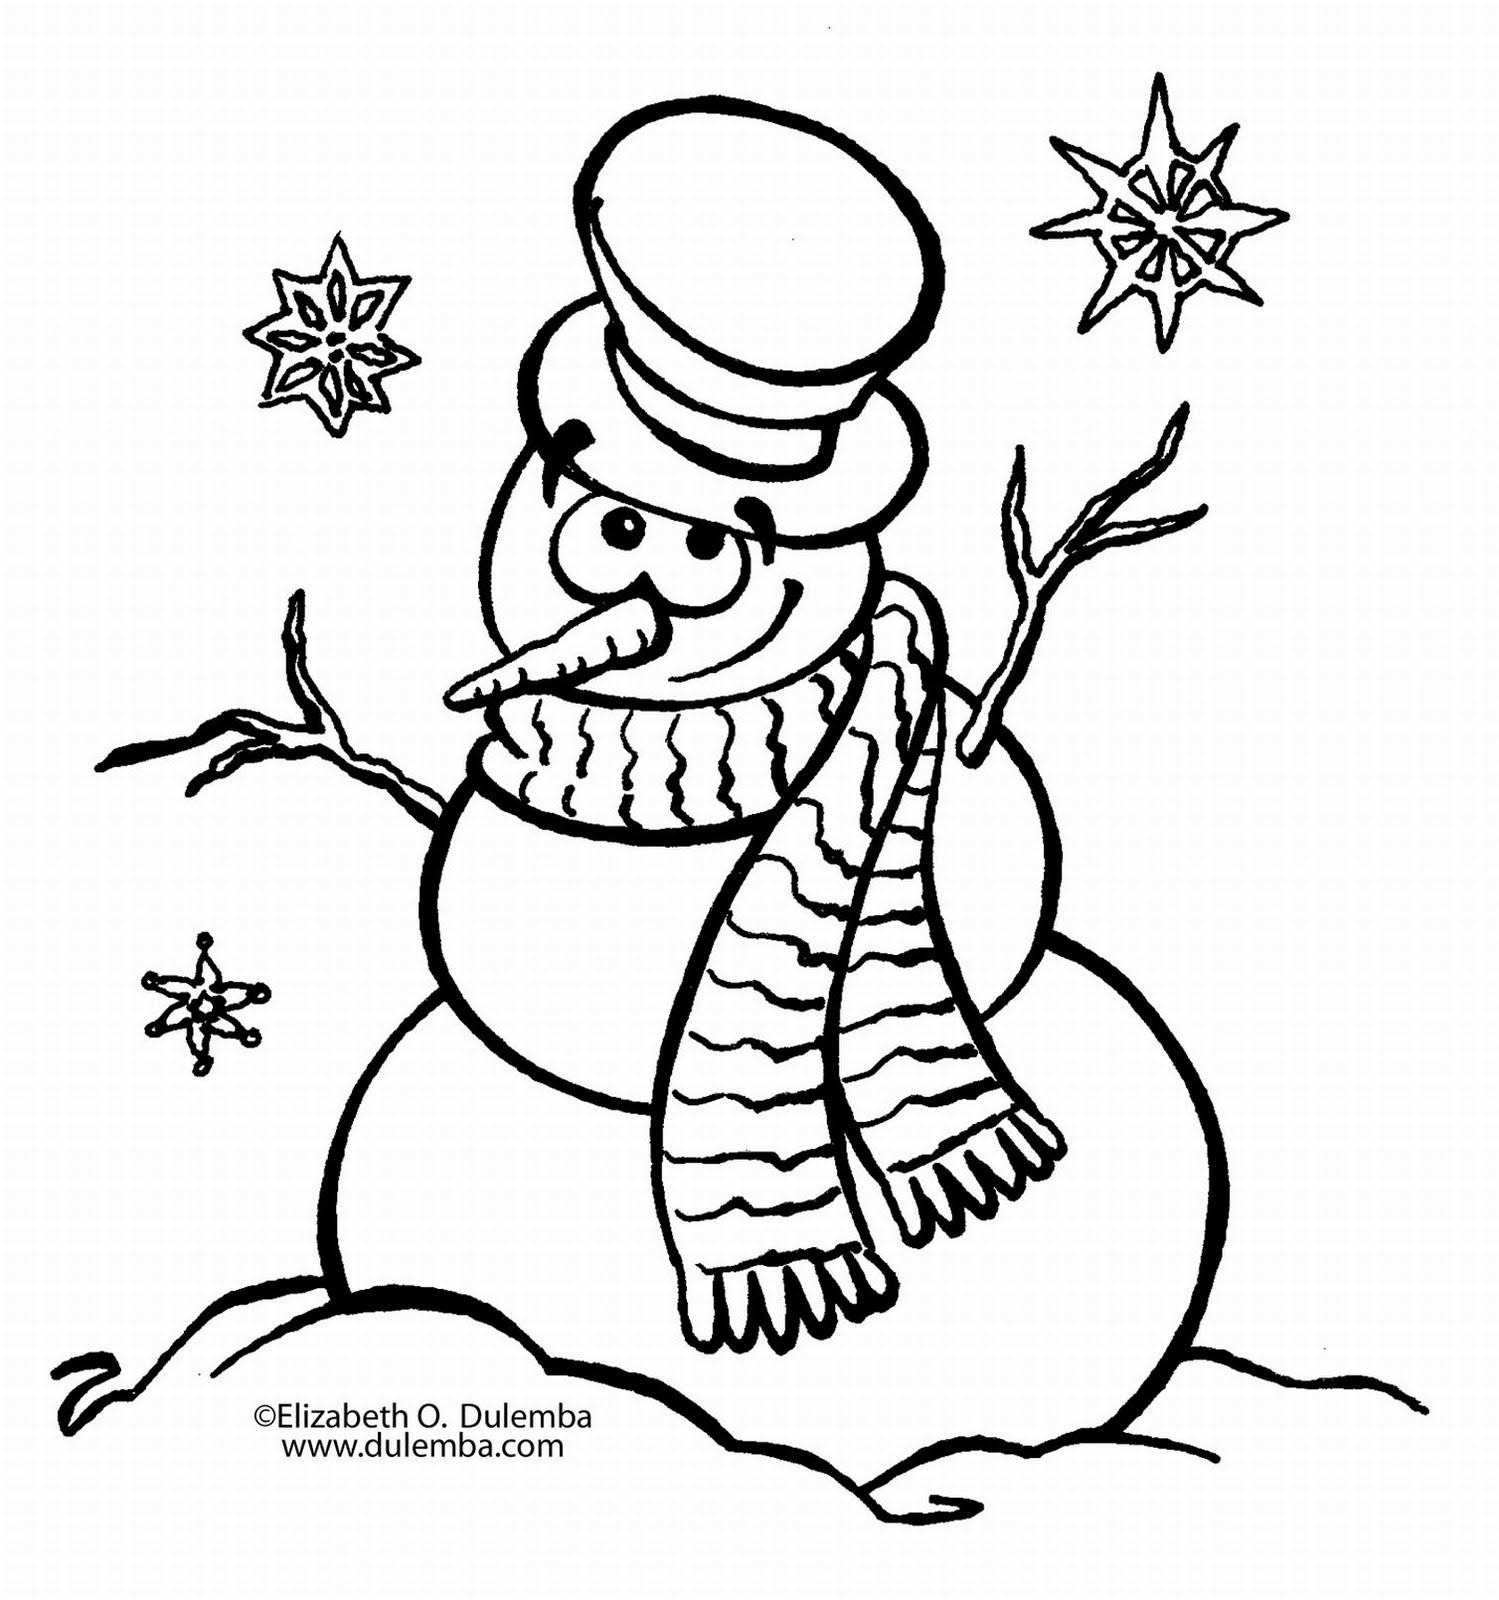 Blank Snowman Coloring Pages Gtgt Disney Coloring Pages